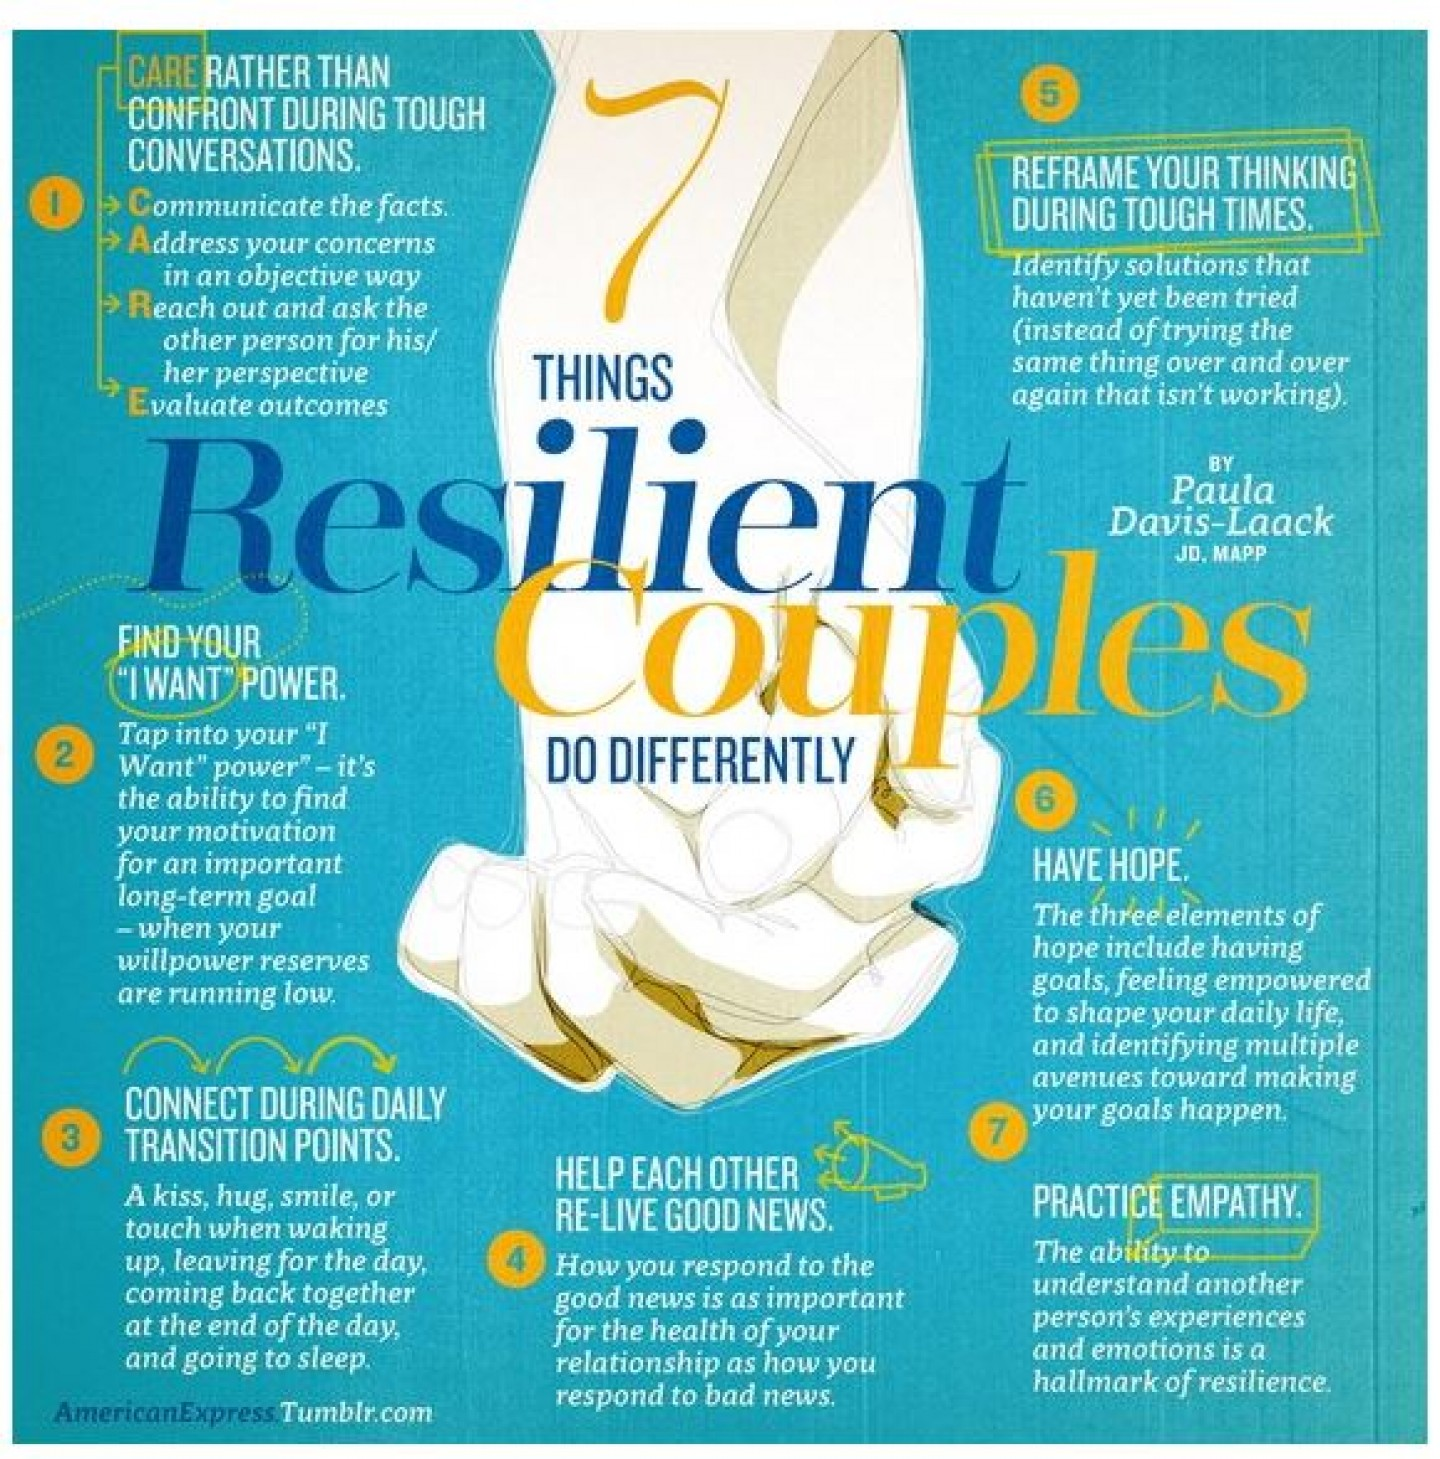 2020-06-08 08_43_02-7 Things Resilient Couples Do Differently _ HuffPost Life